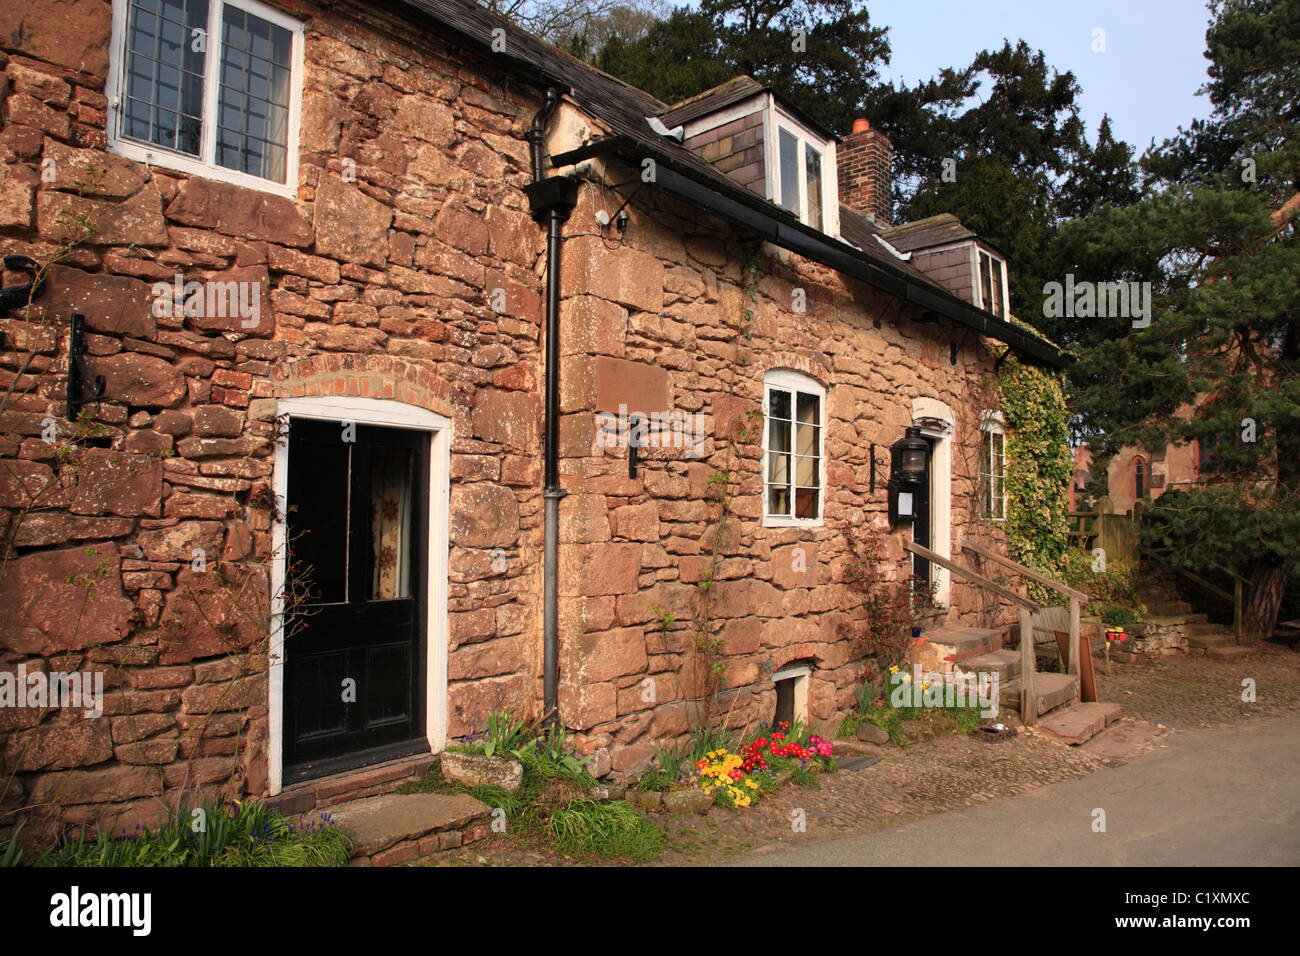 Boat Inn Erbistock North Wales UK UNited Kingdom EU Europe - Stock Image